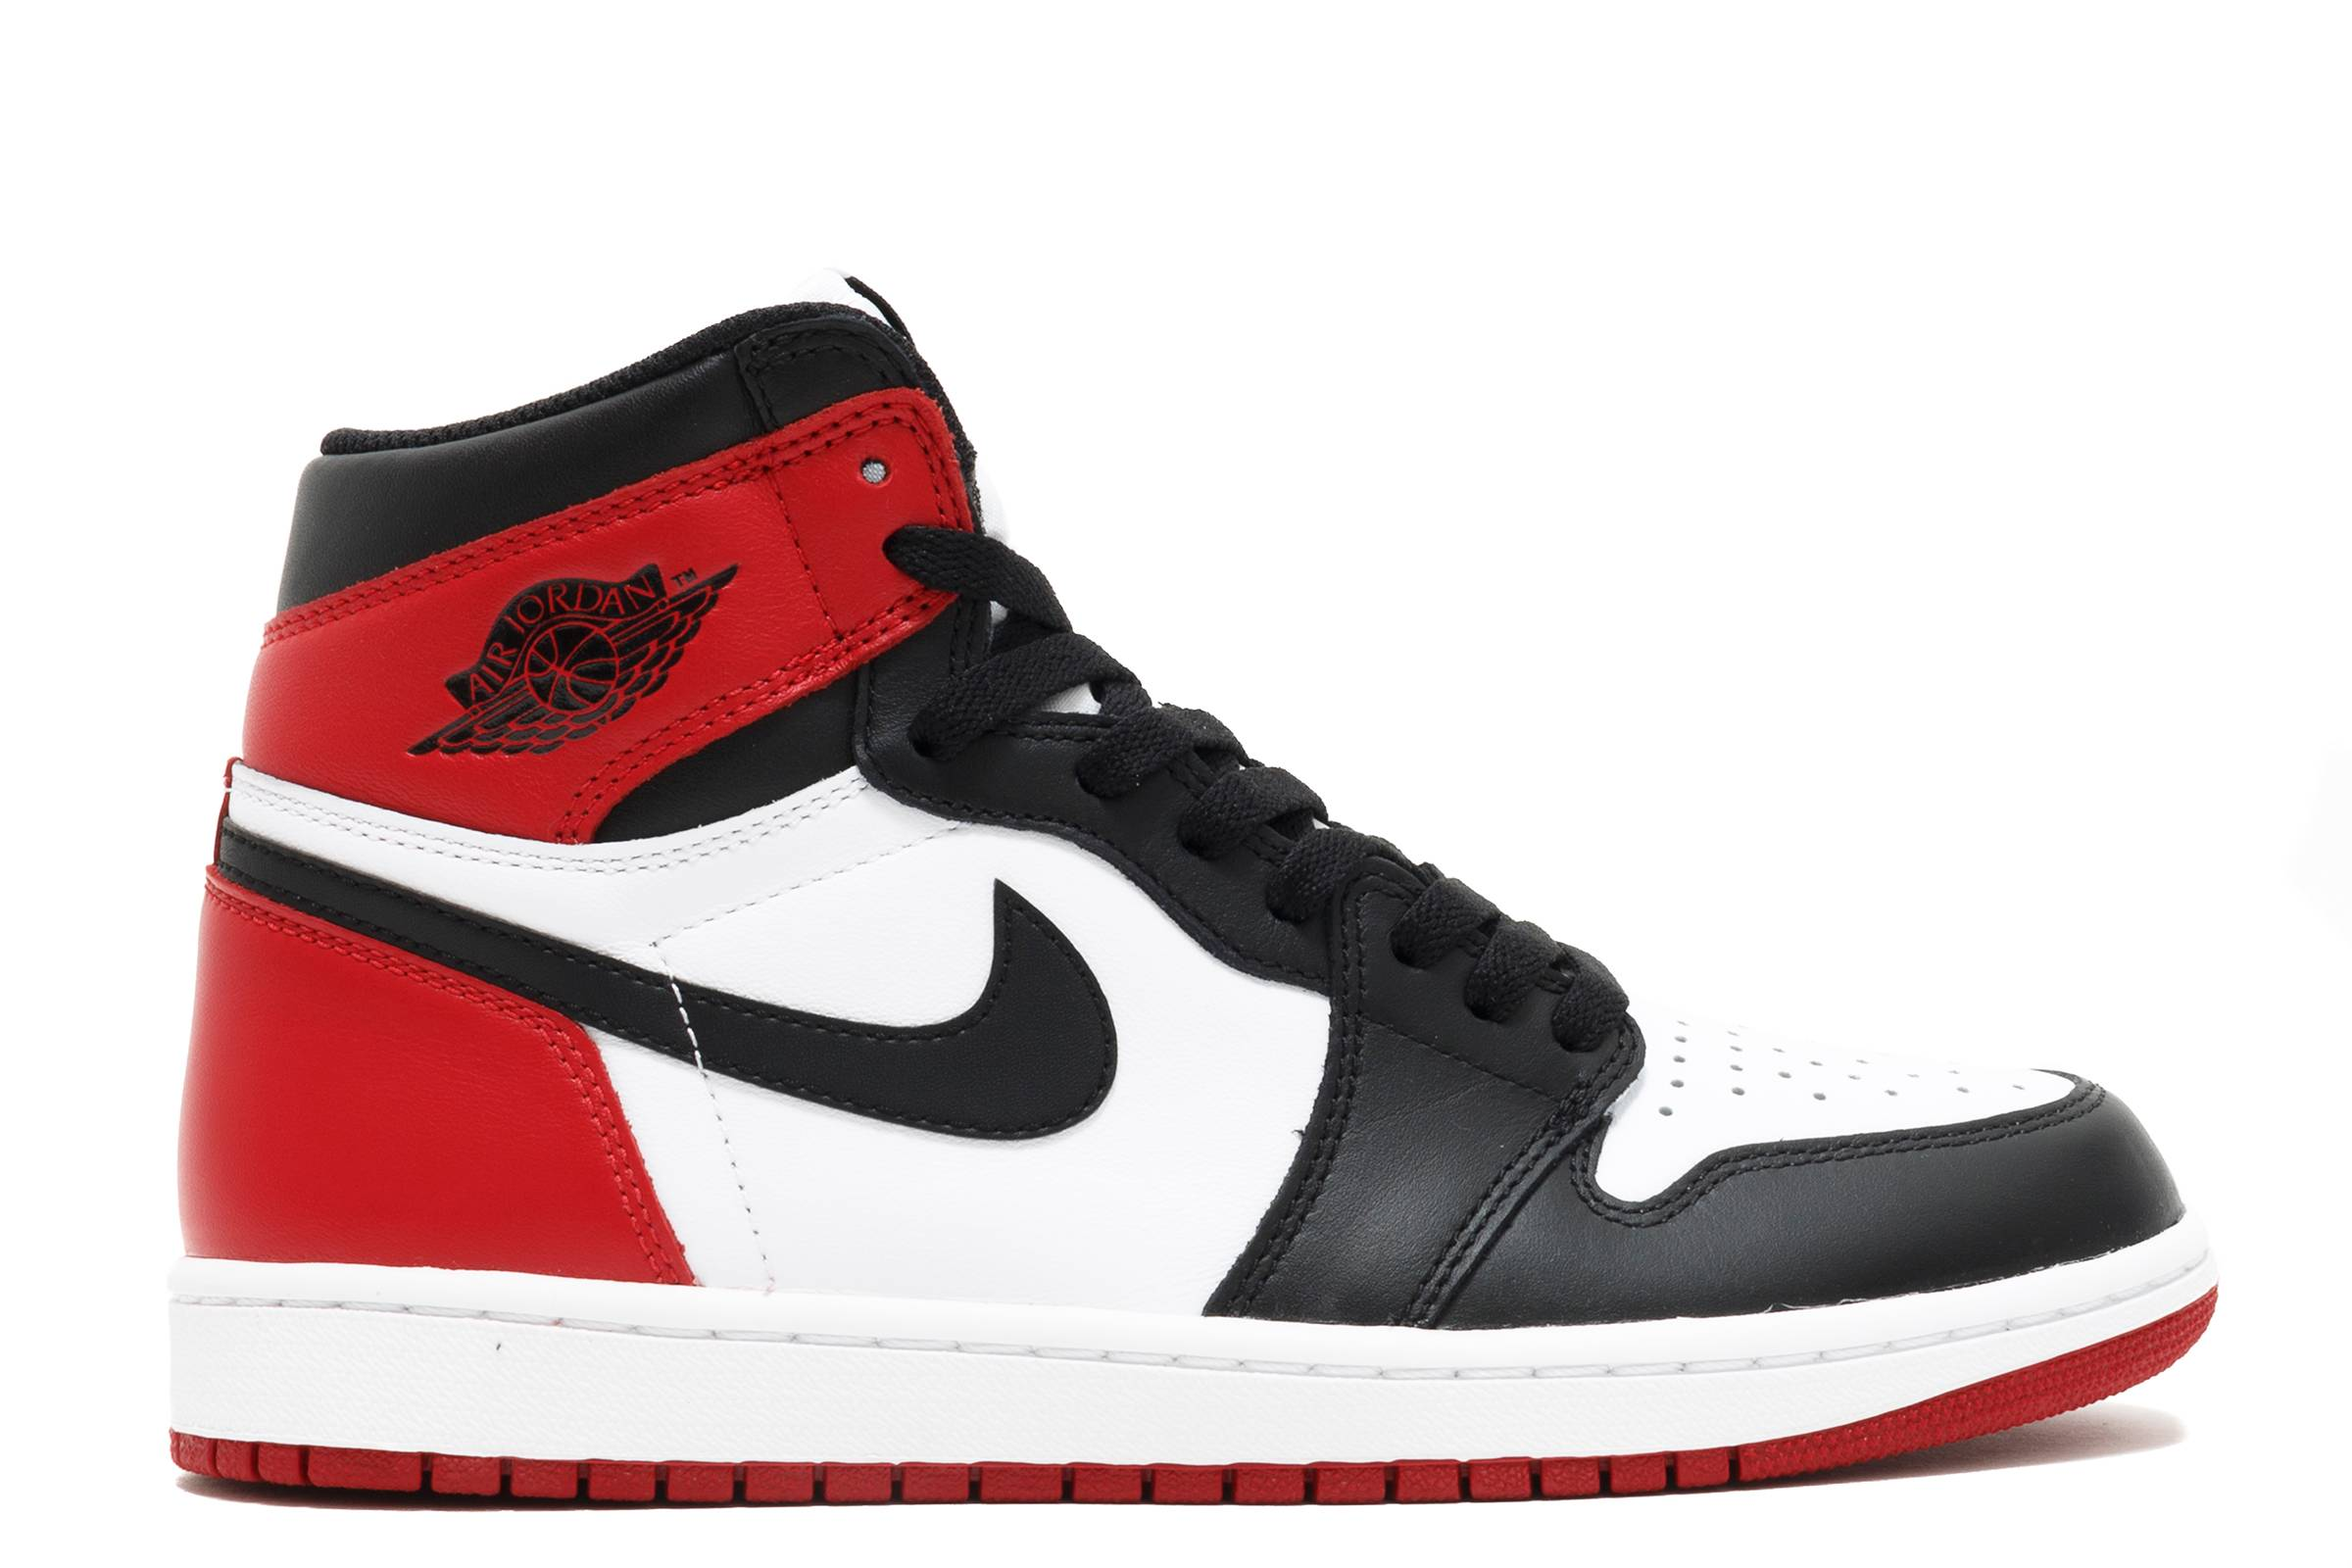 65c422e3fc01 The One That Started It All  A History of the Jordan 1 - Jordan 1 ...